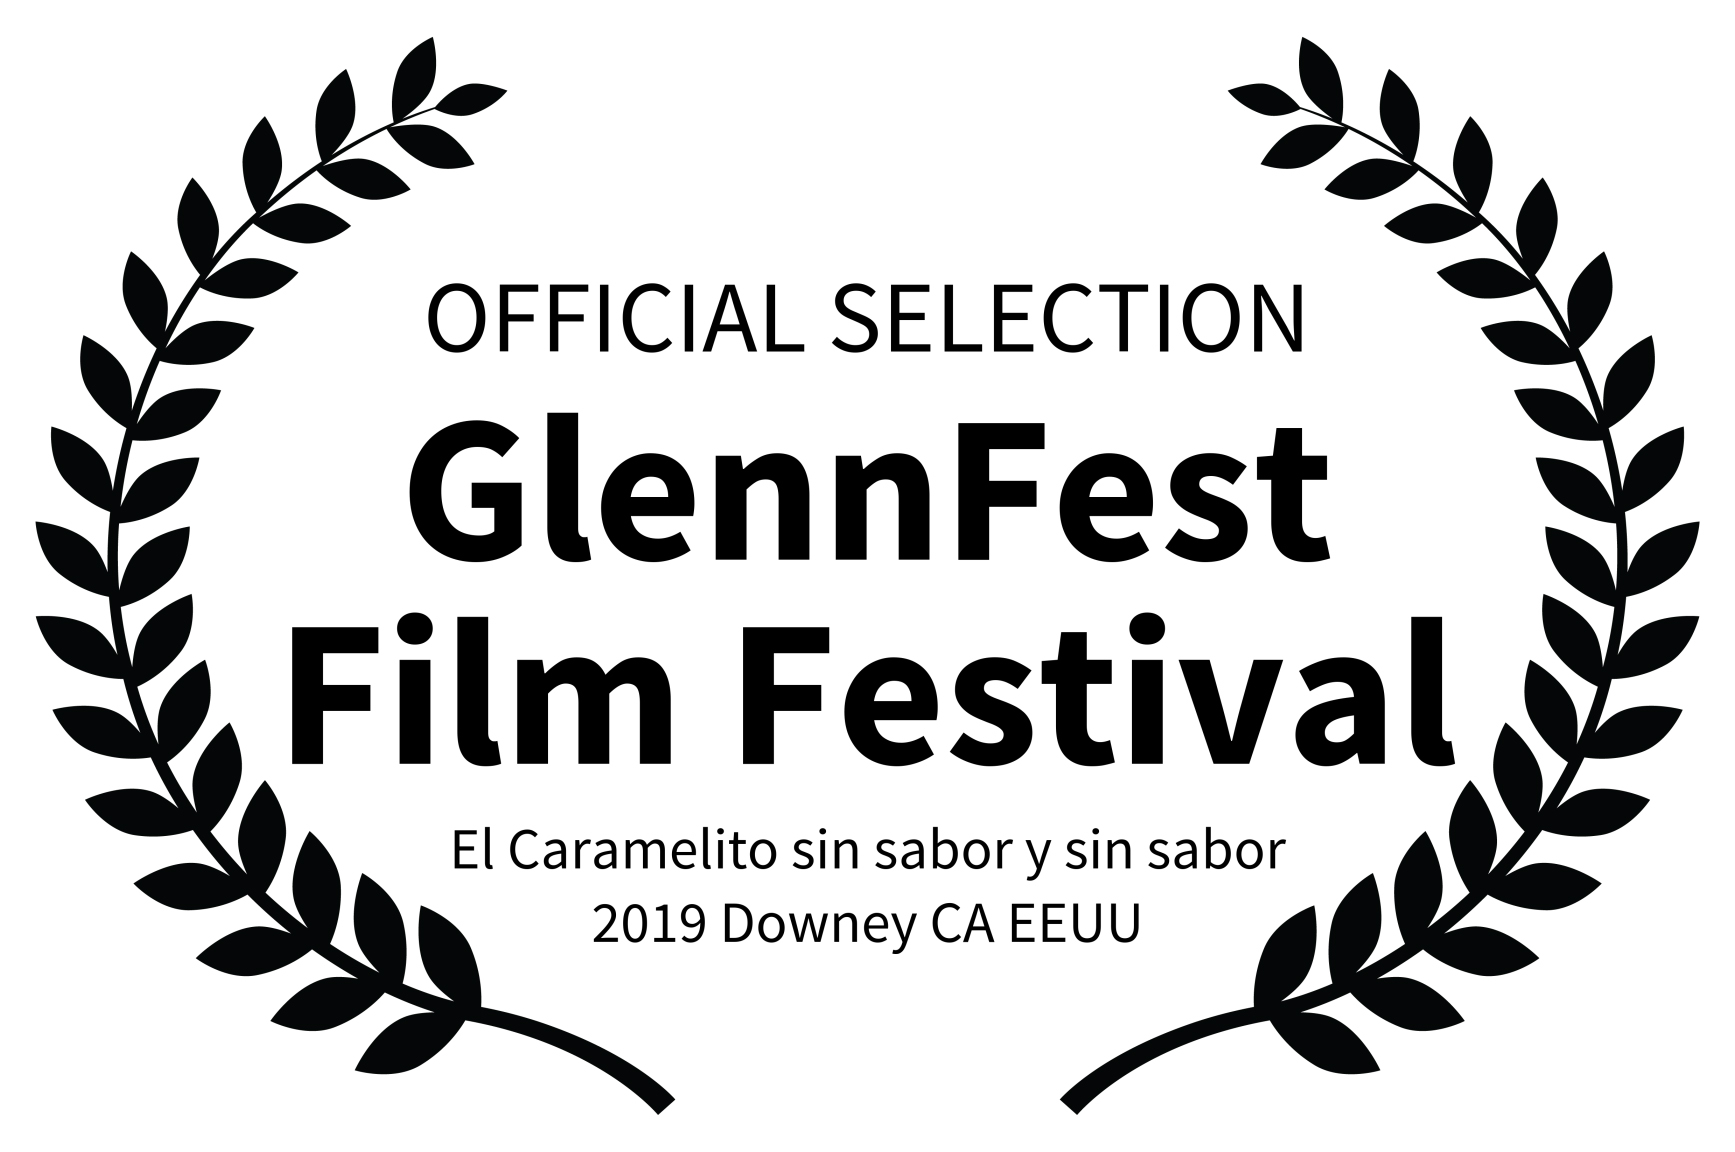 OFFICIAL SELECTION - GlennFest Film Fest